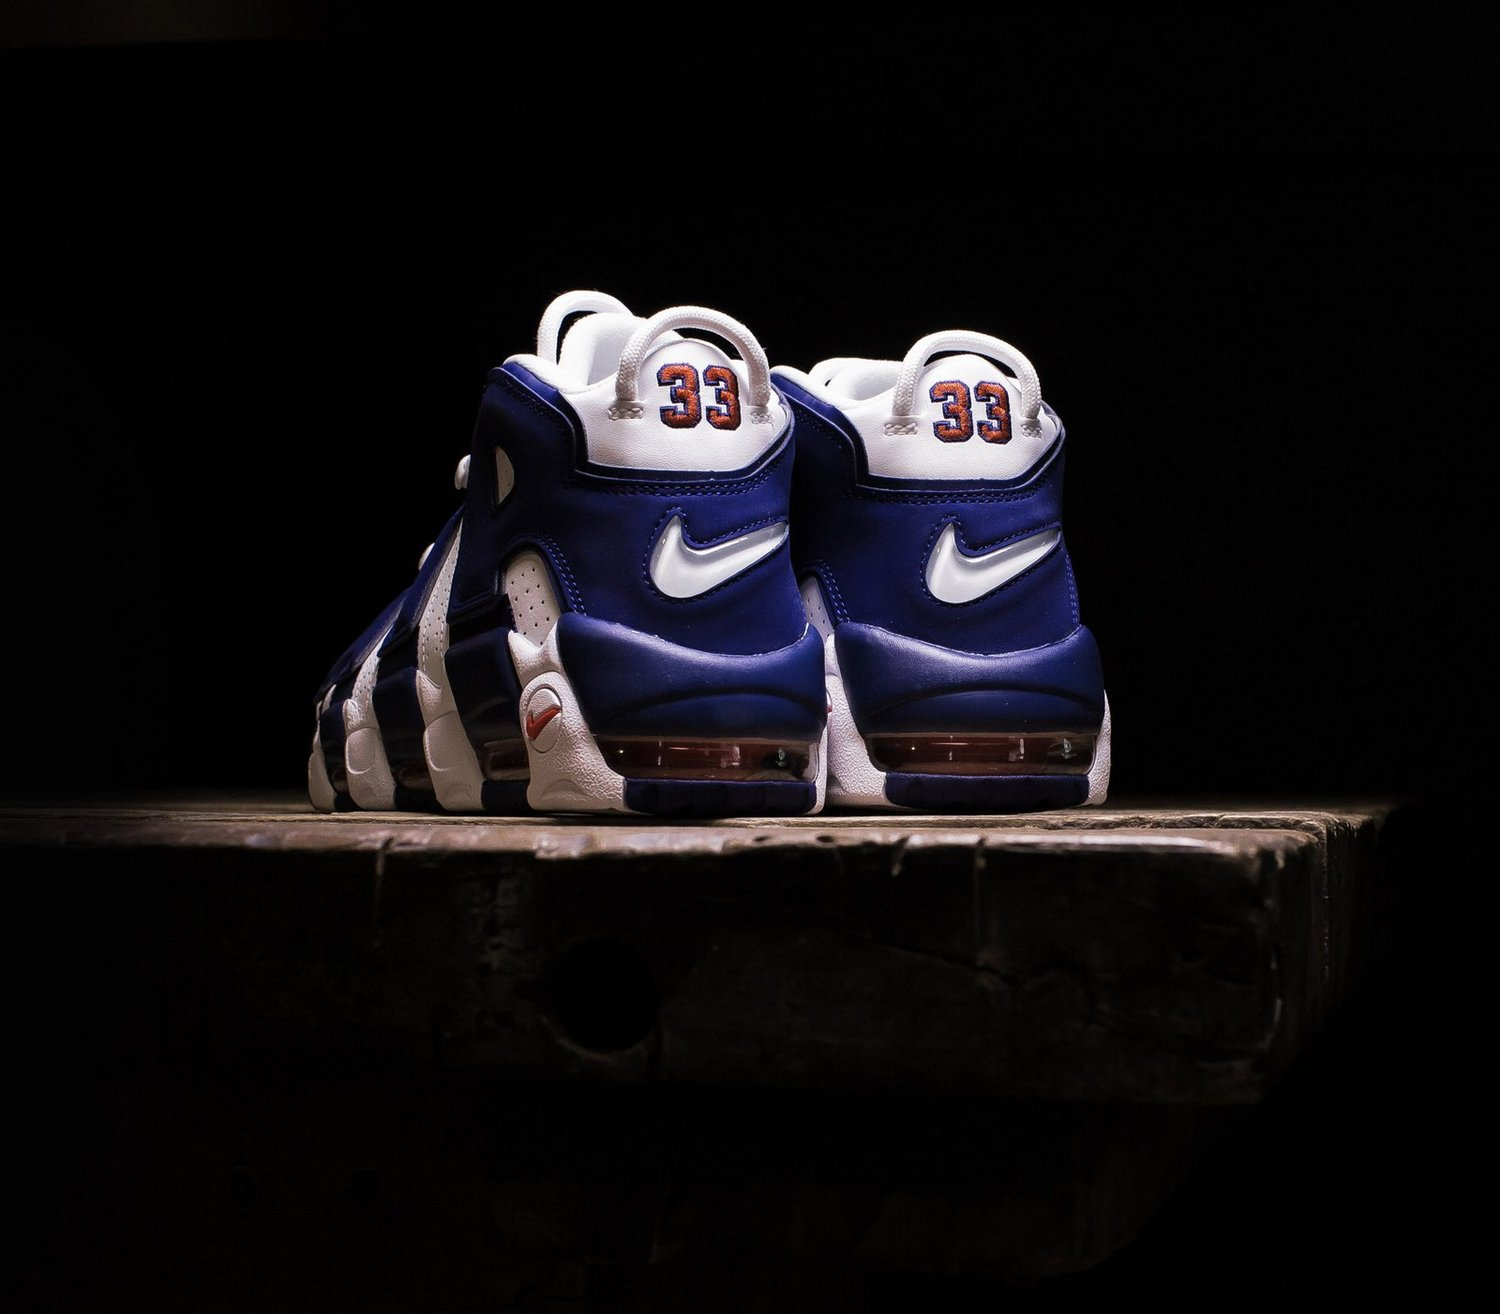 f3a6d6a4c3aab Now Available: Nike Air More Uptempo '96